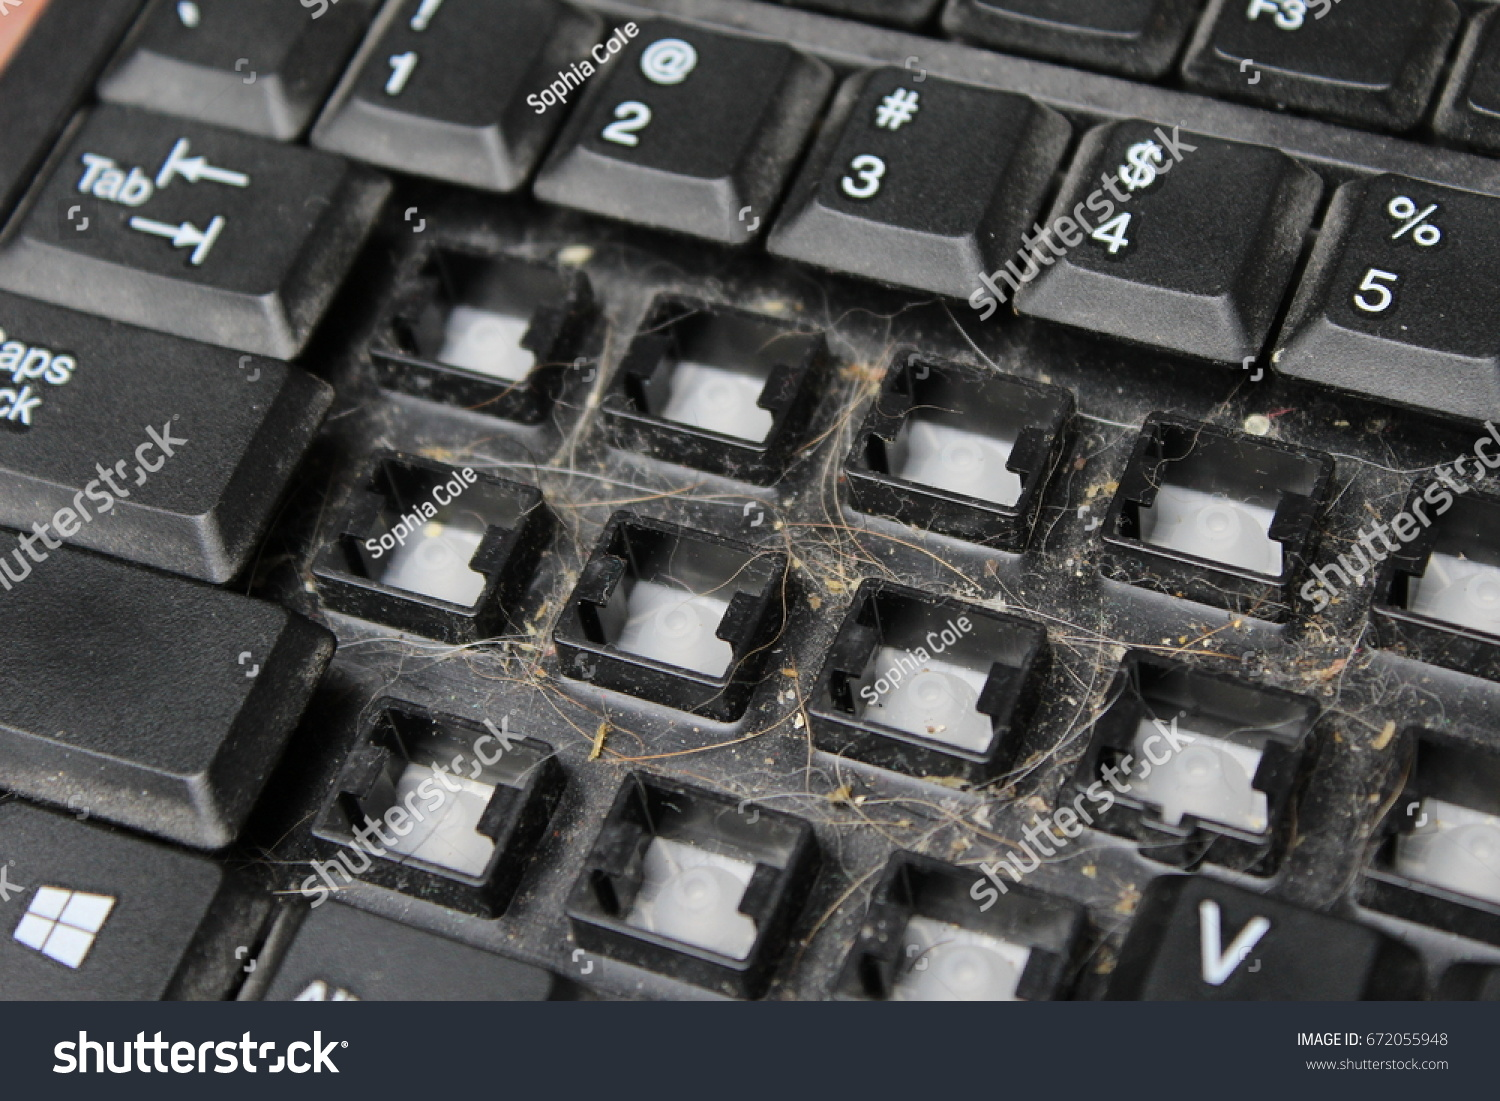 Keys Removed Keyboard Dirty Keyboard Dust Stock Photo Download Now